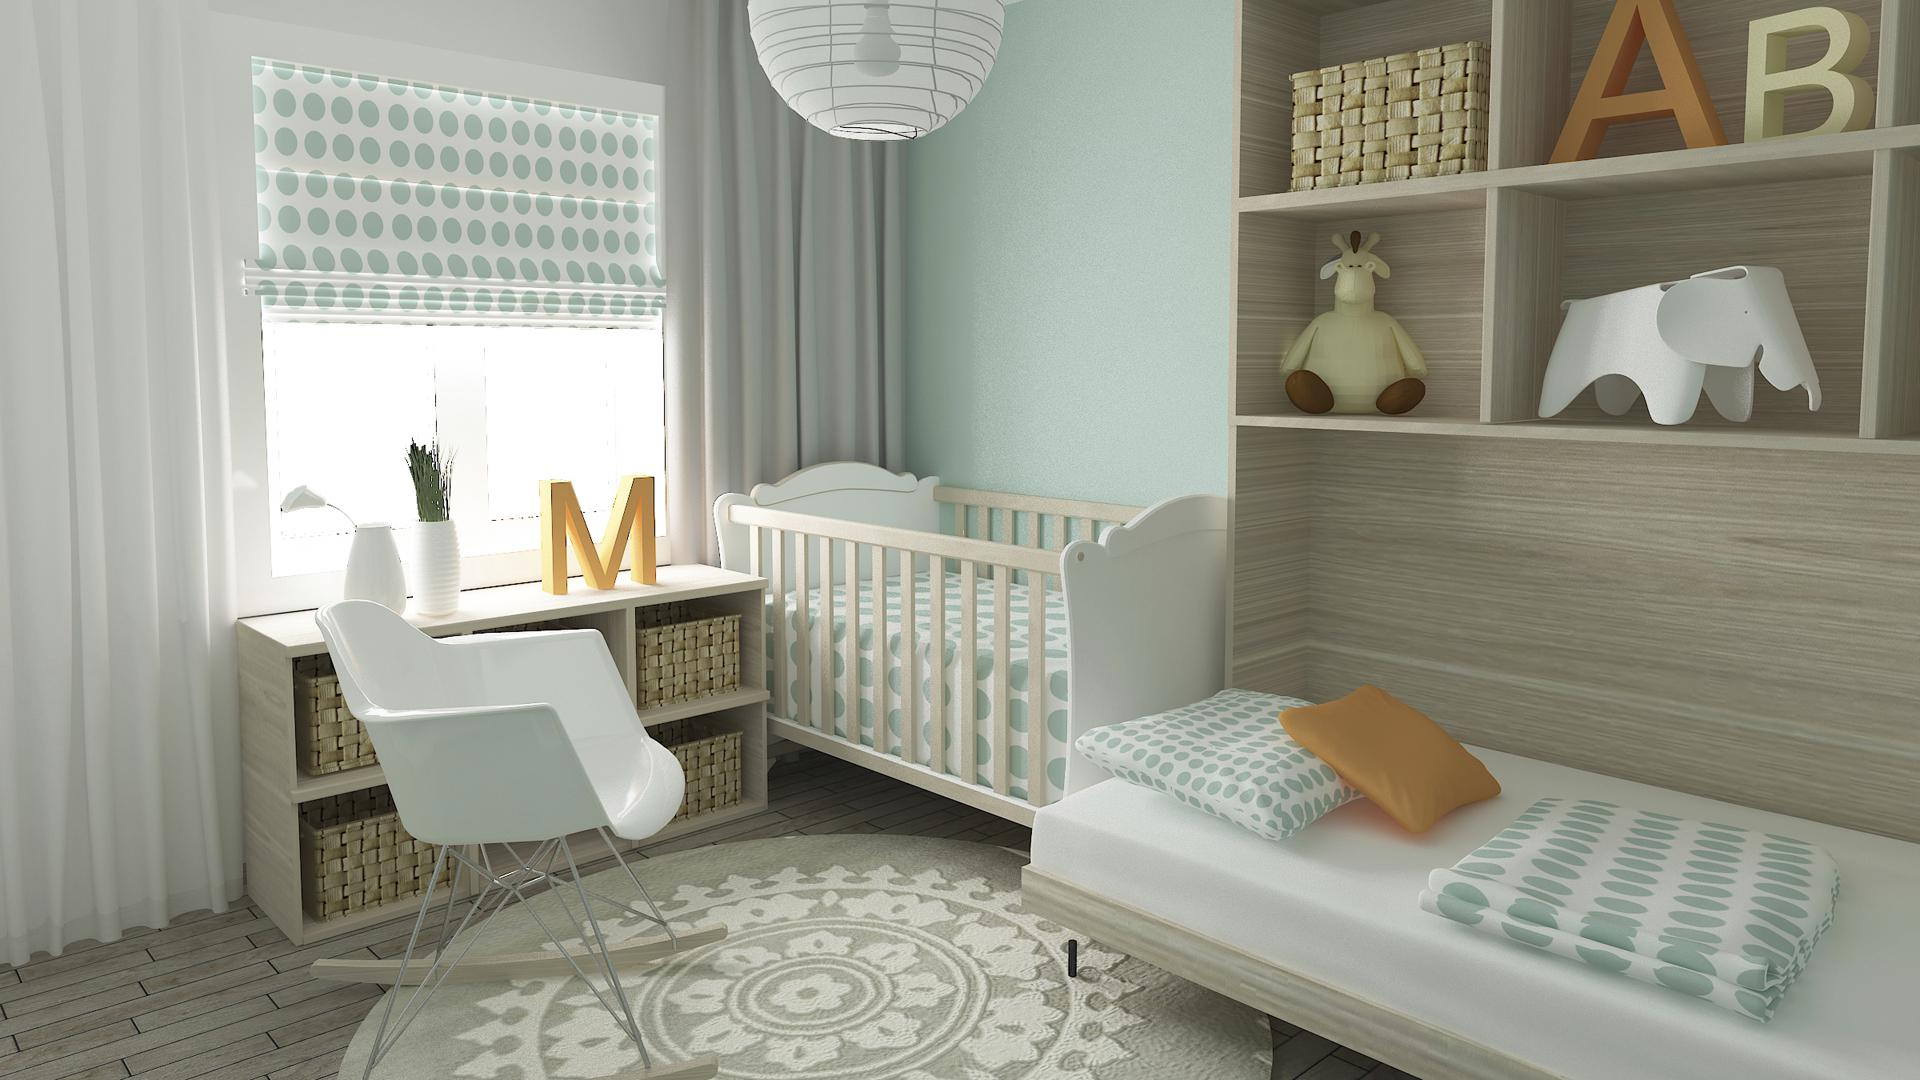 Feng shui tips furniture placement Mirror Brilliant Feng Shui Tips For Kids Rooms Feng Shui And Beyond Brilliant Feng Shui Tips For Kids Rooms Sheknows